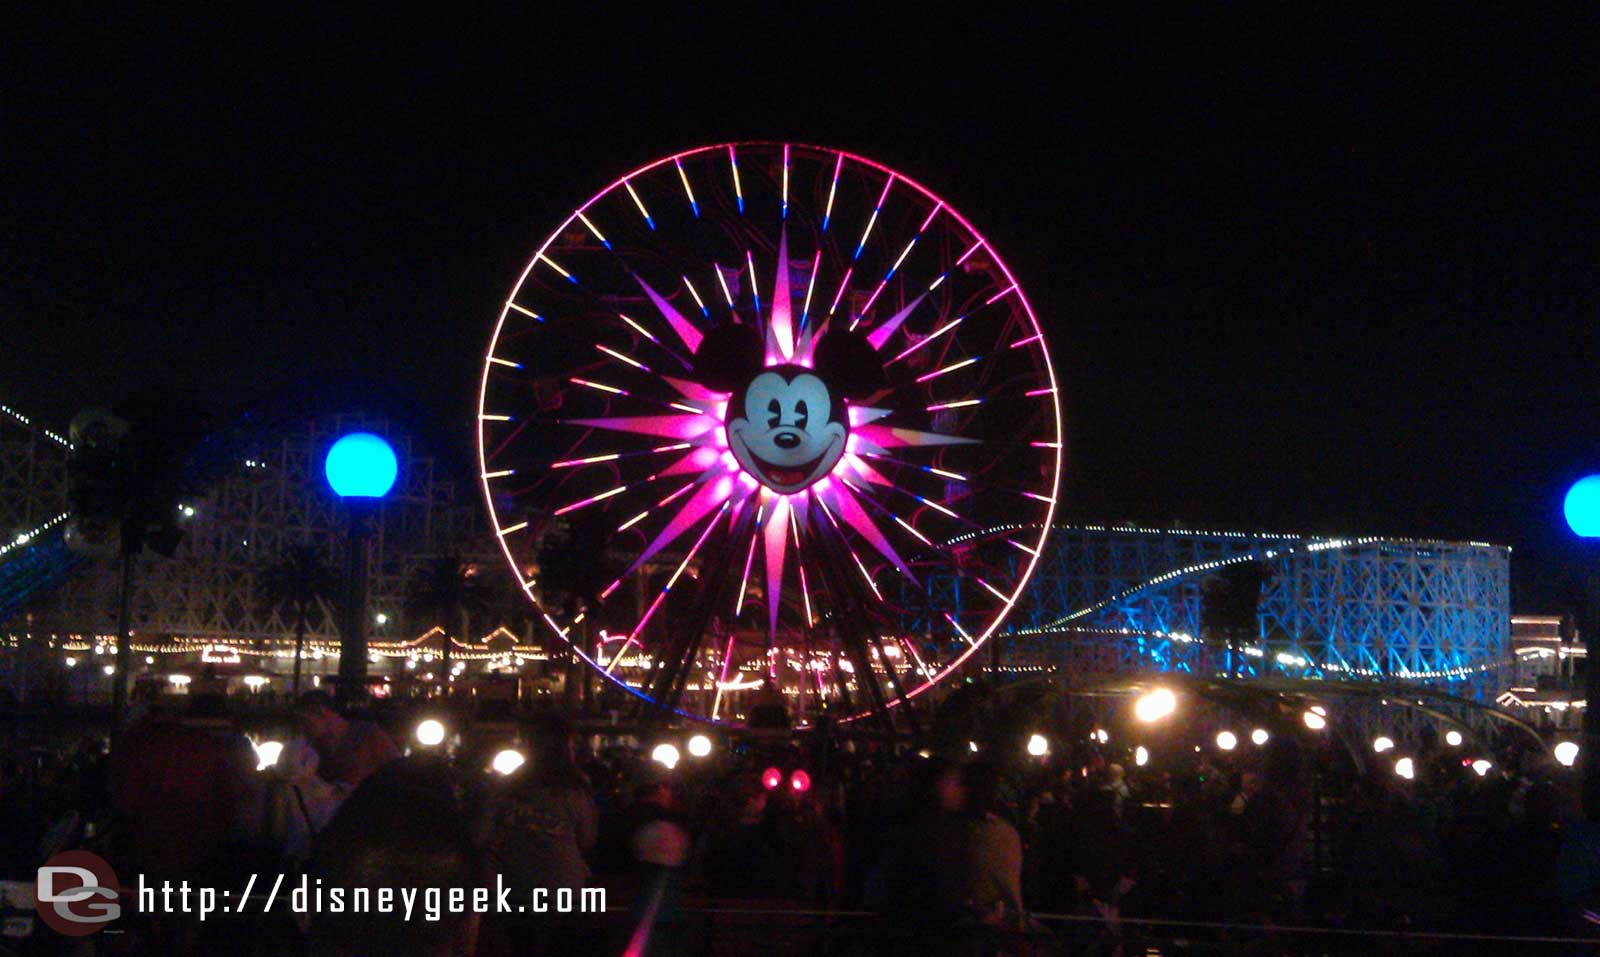 Waiting for World of Color, Mickey's Fun Wheel across Paradise Bay